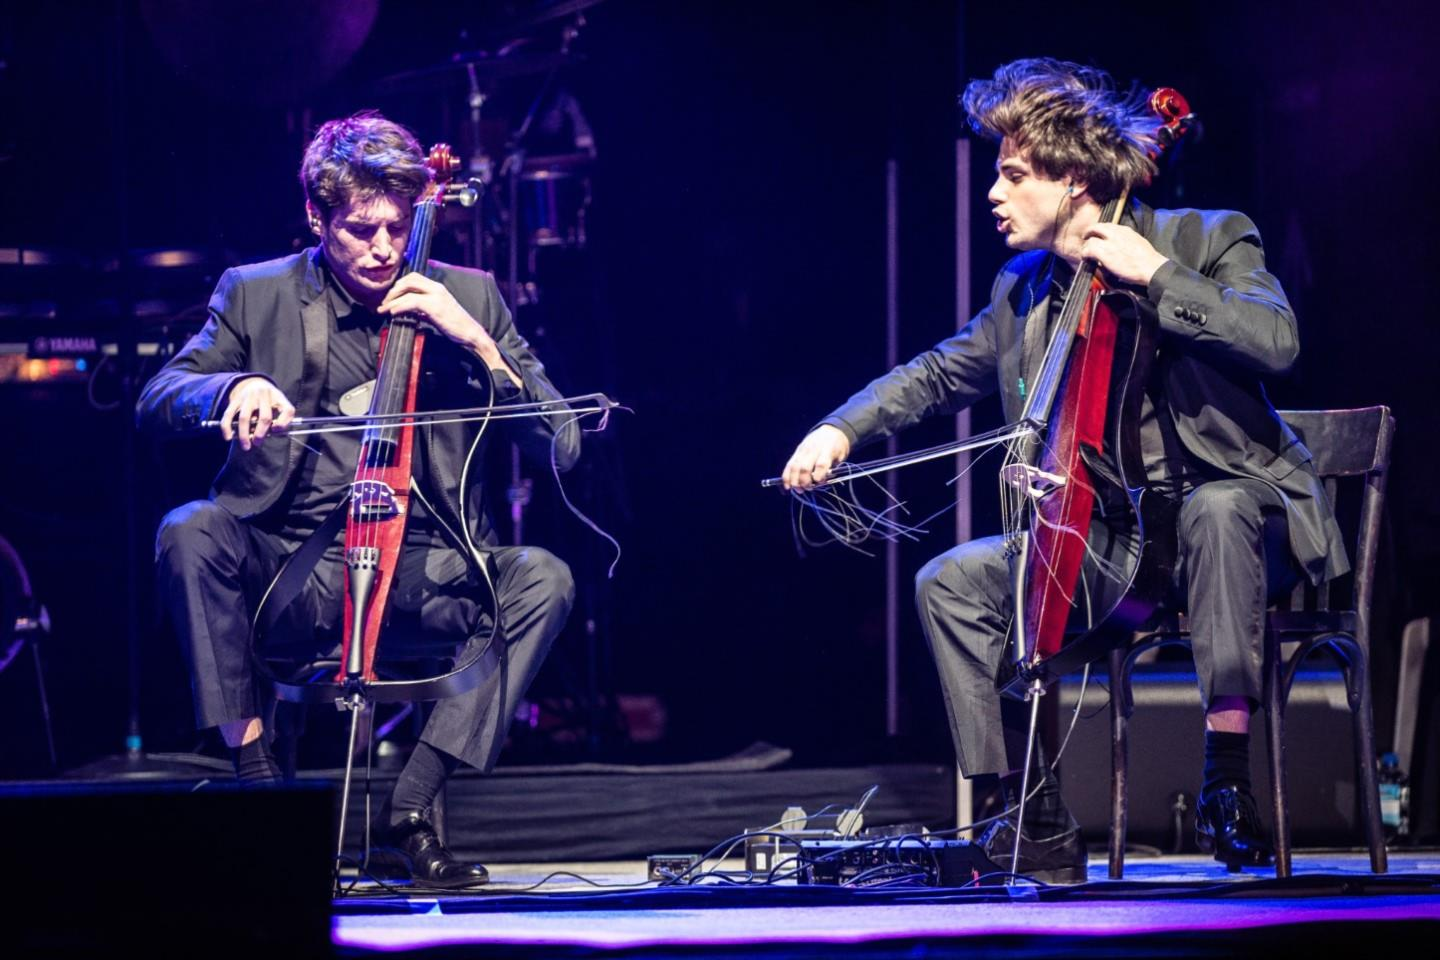 2Cellos Tickets | 2Cellos Tour Dates and Concert Tickets